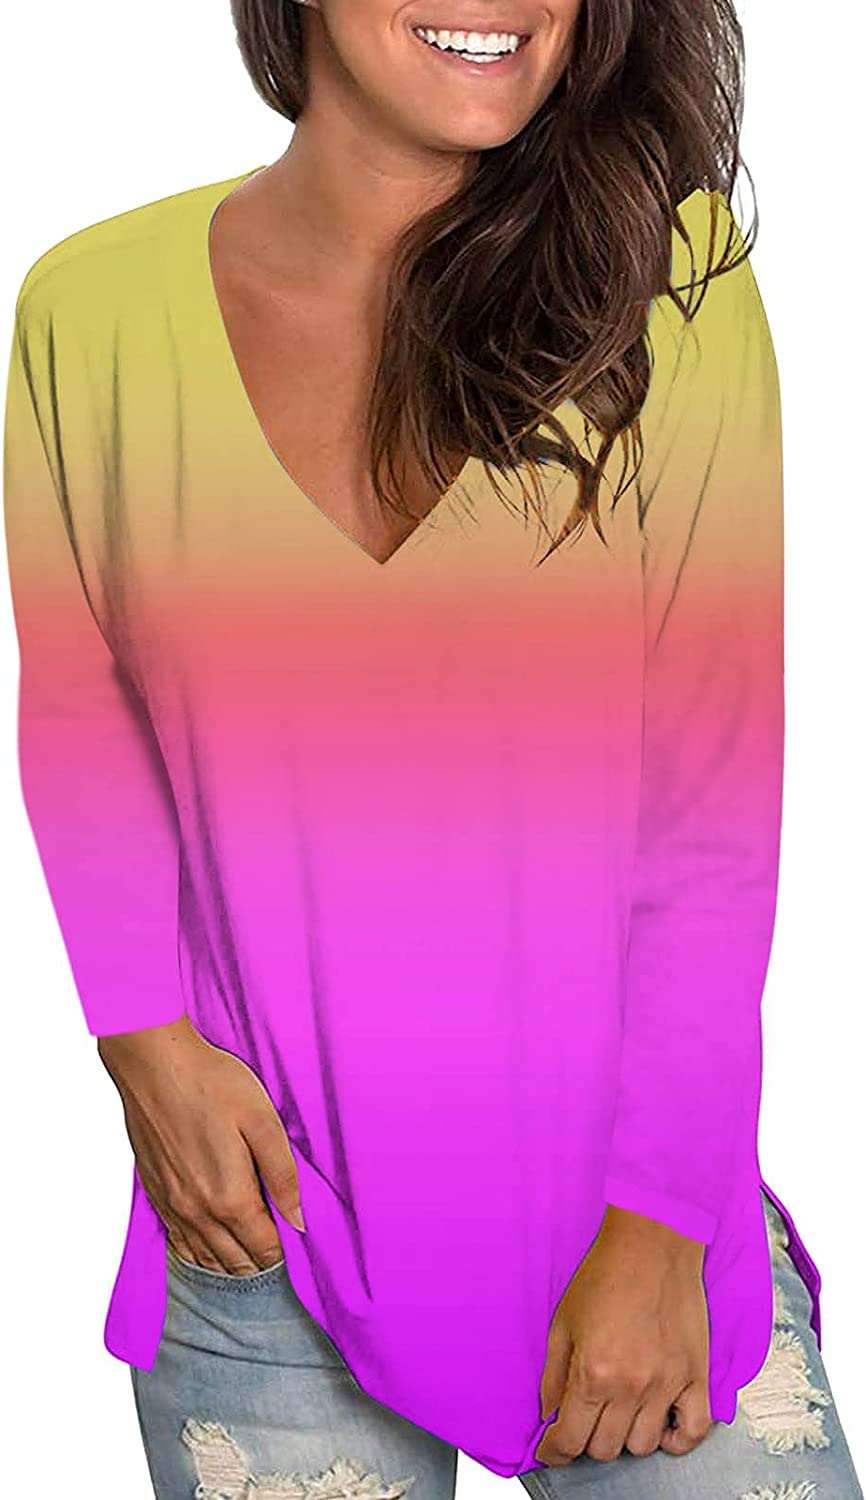 Womens Casual Gradient Tops Long Sleeve V-Neck T-Shirts Tie Dye Shirts Fashion Autumn Loose Blouse